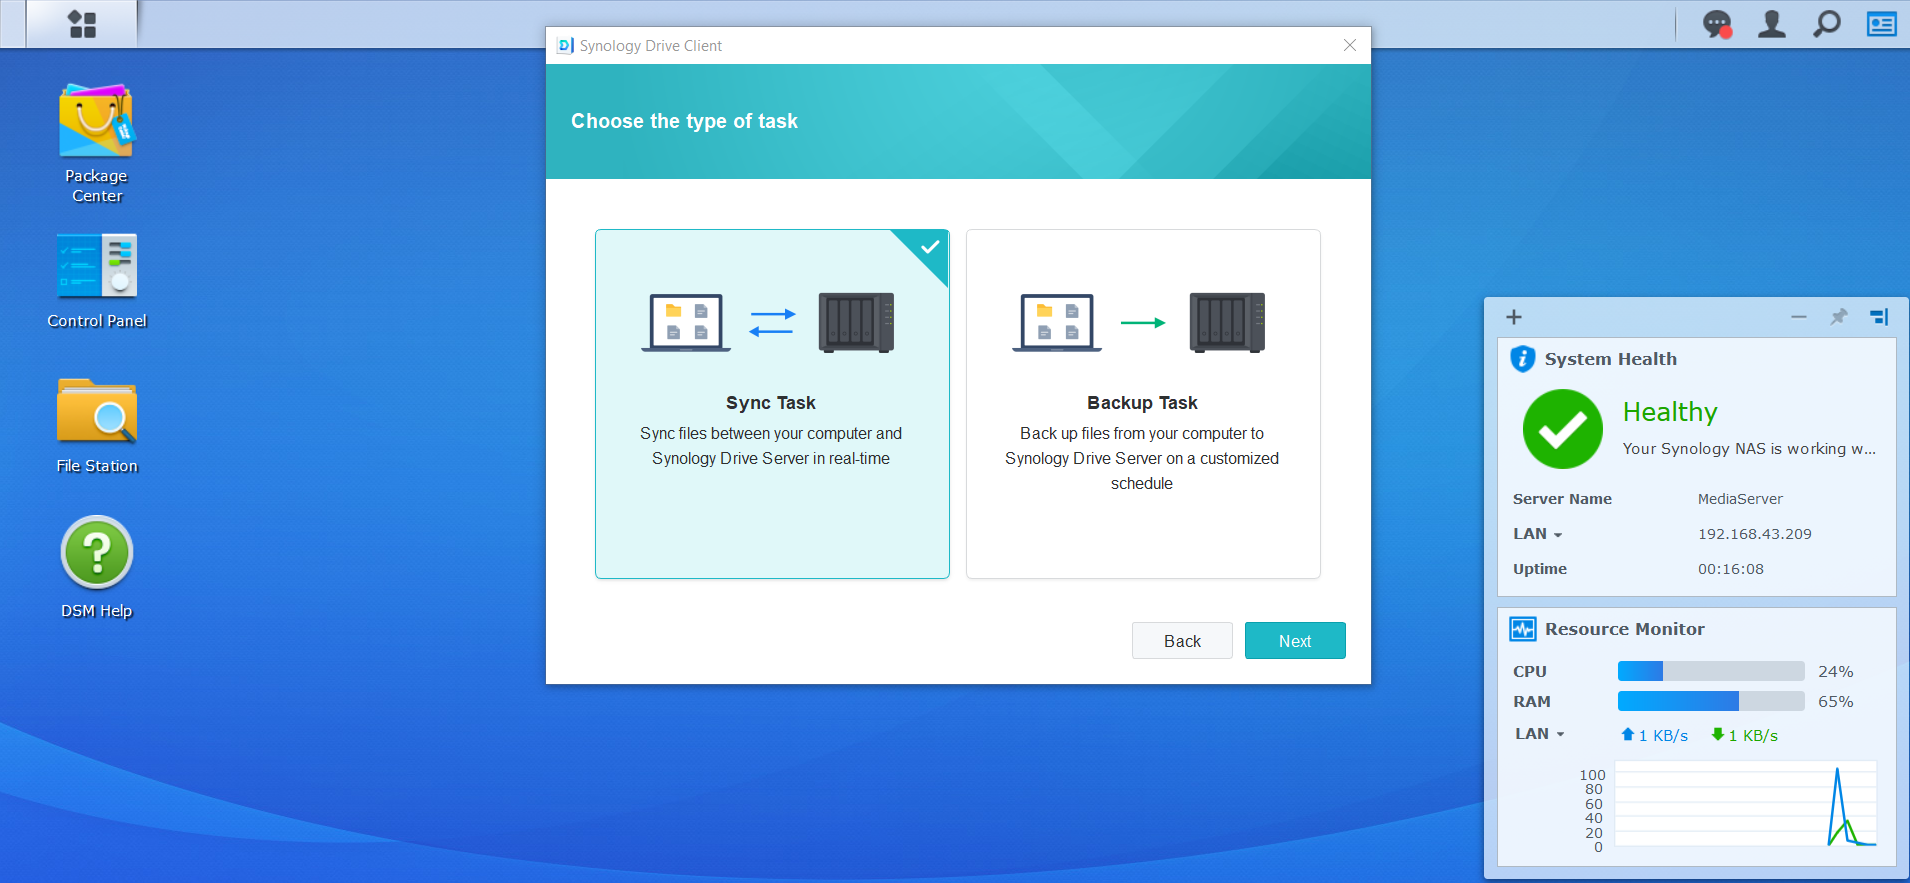 Synology Drive Client task.png